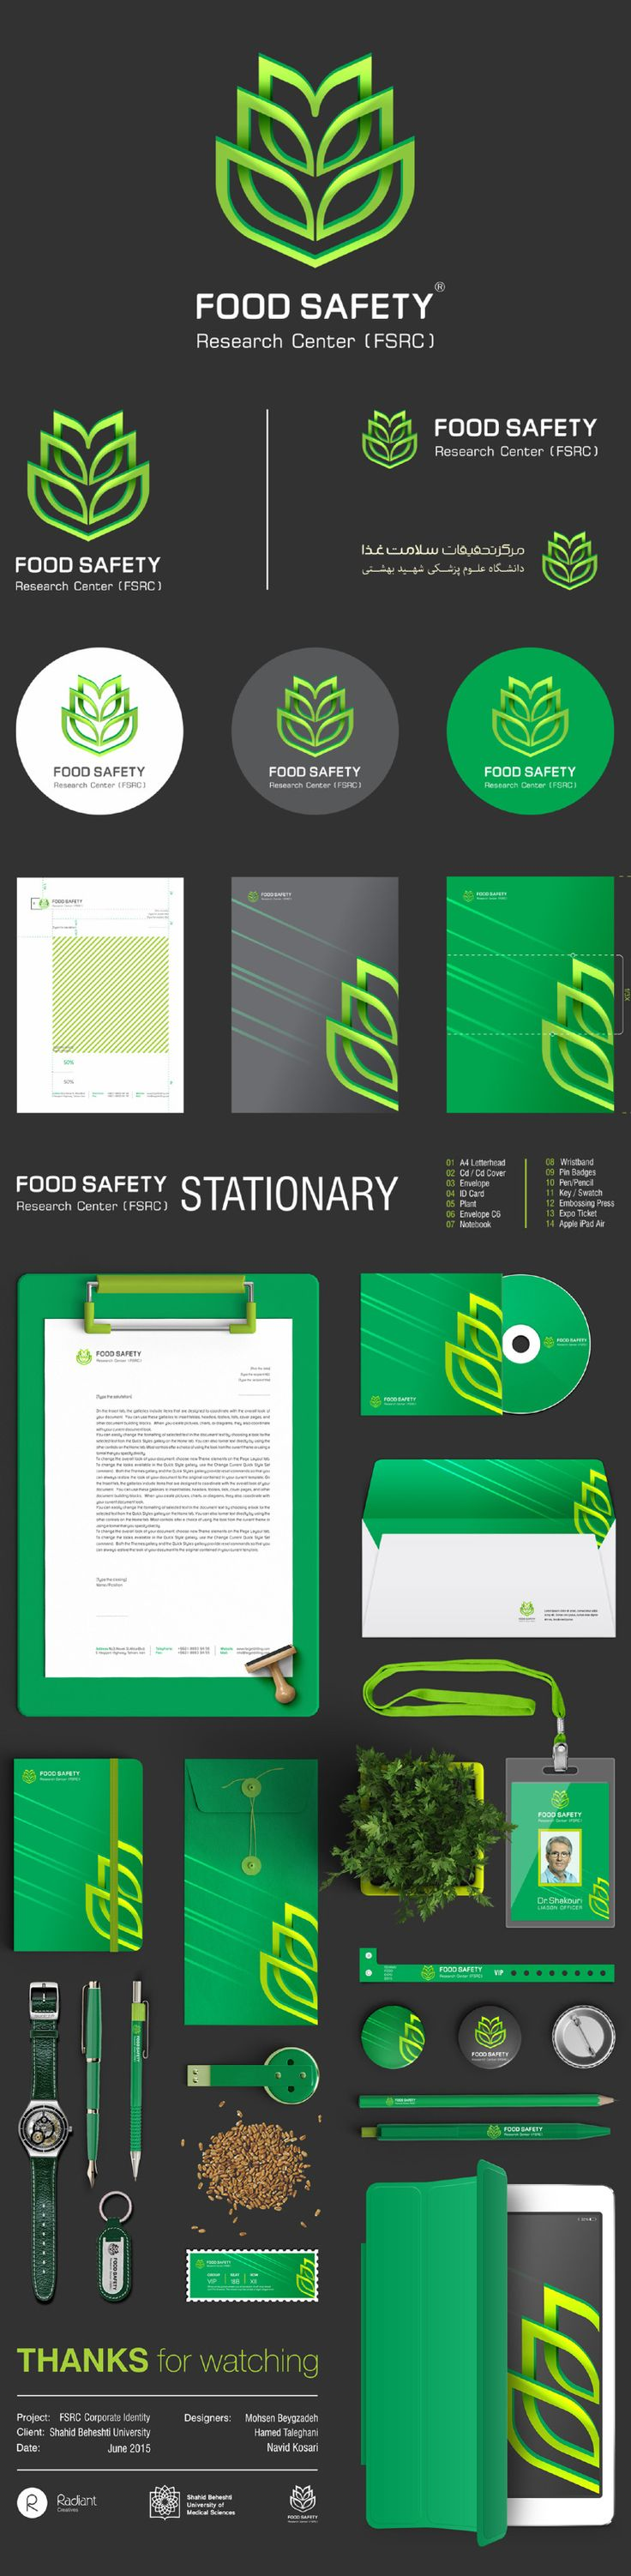 38 best Corporate identity images on Pinterest